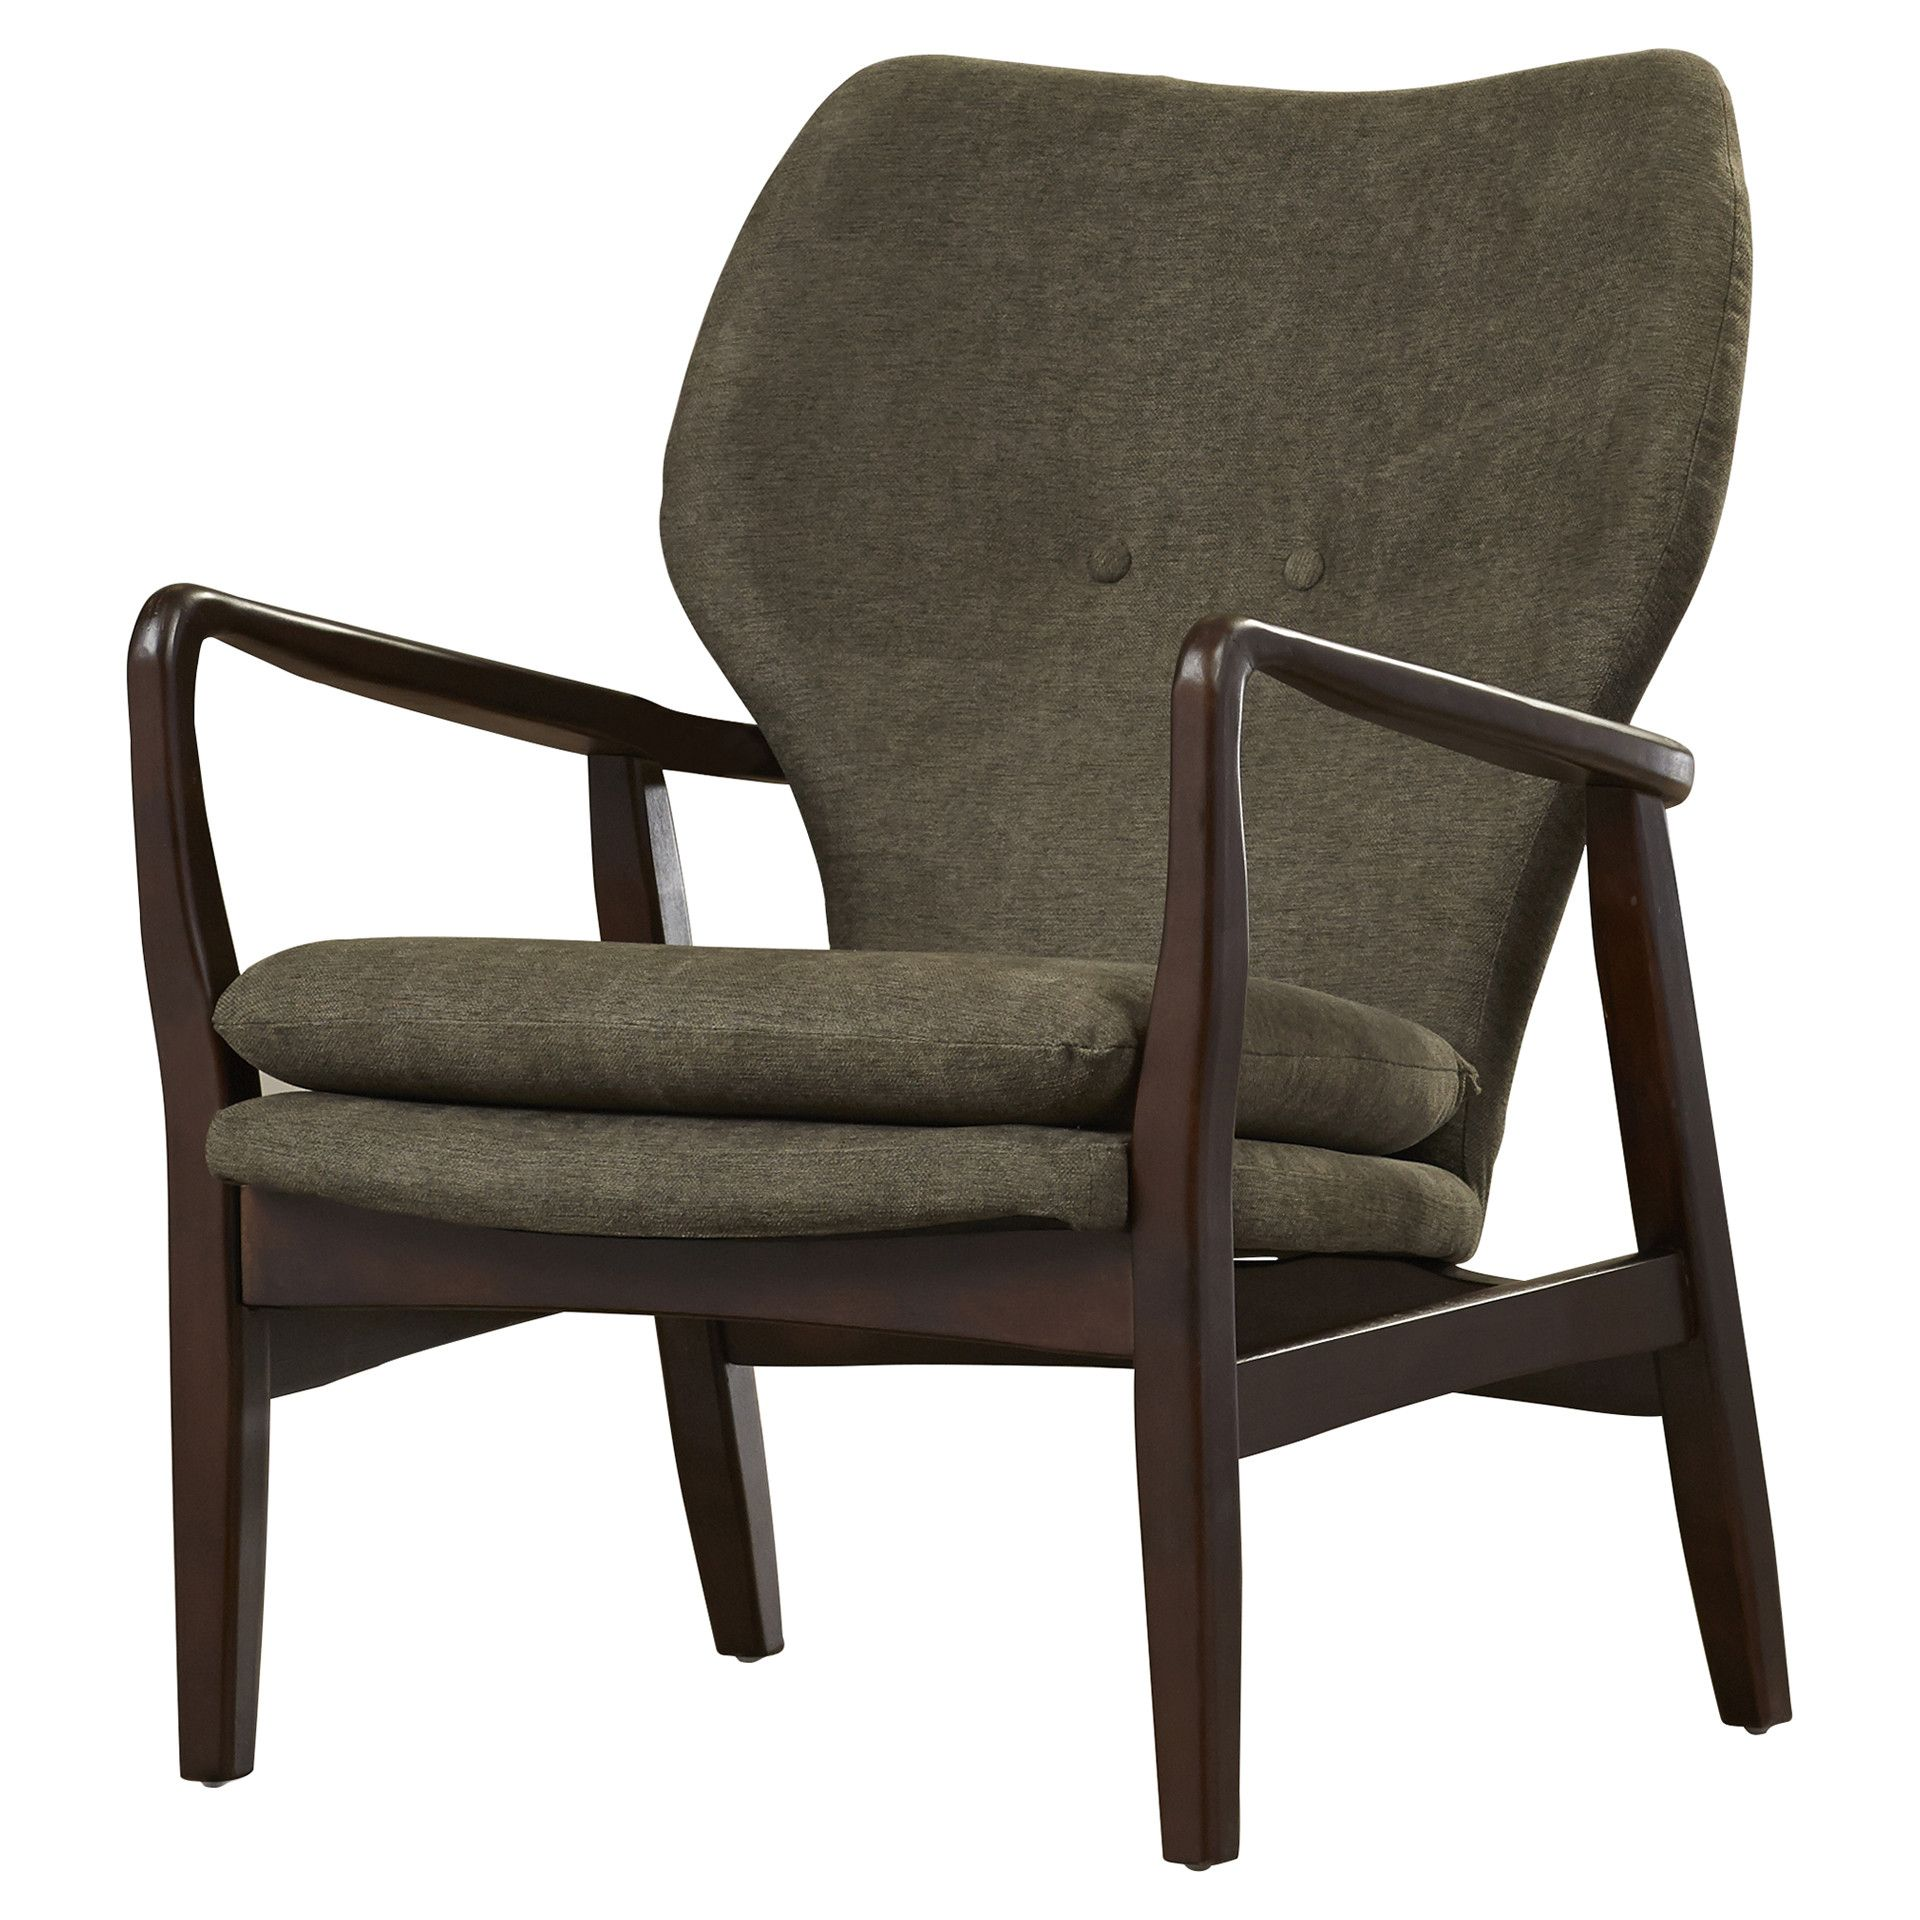 Modern wood chair with arms - Ingels Wood Arm Chair